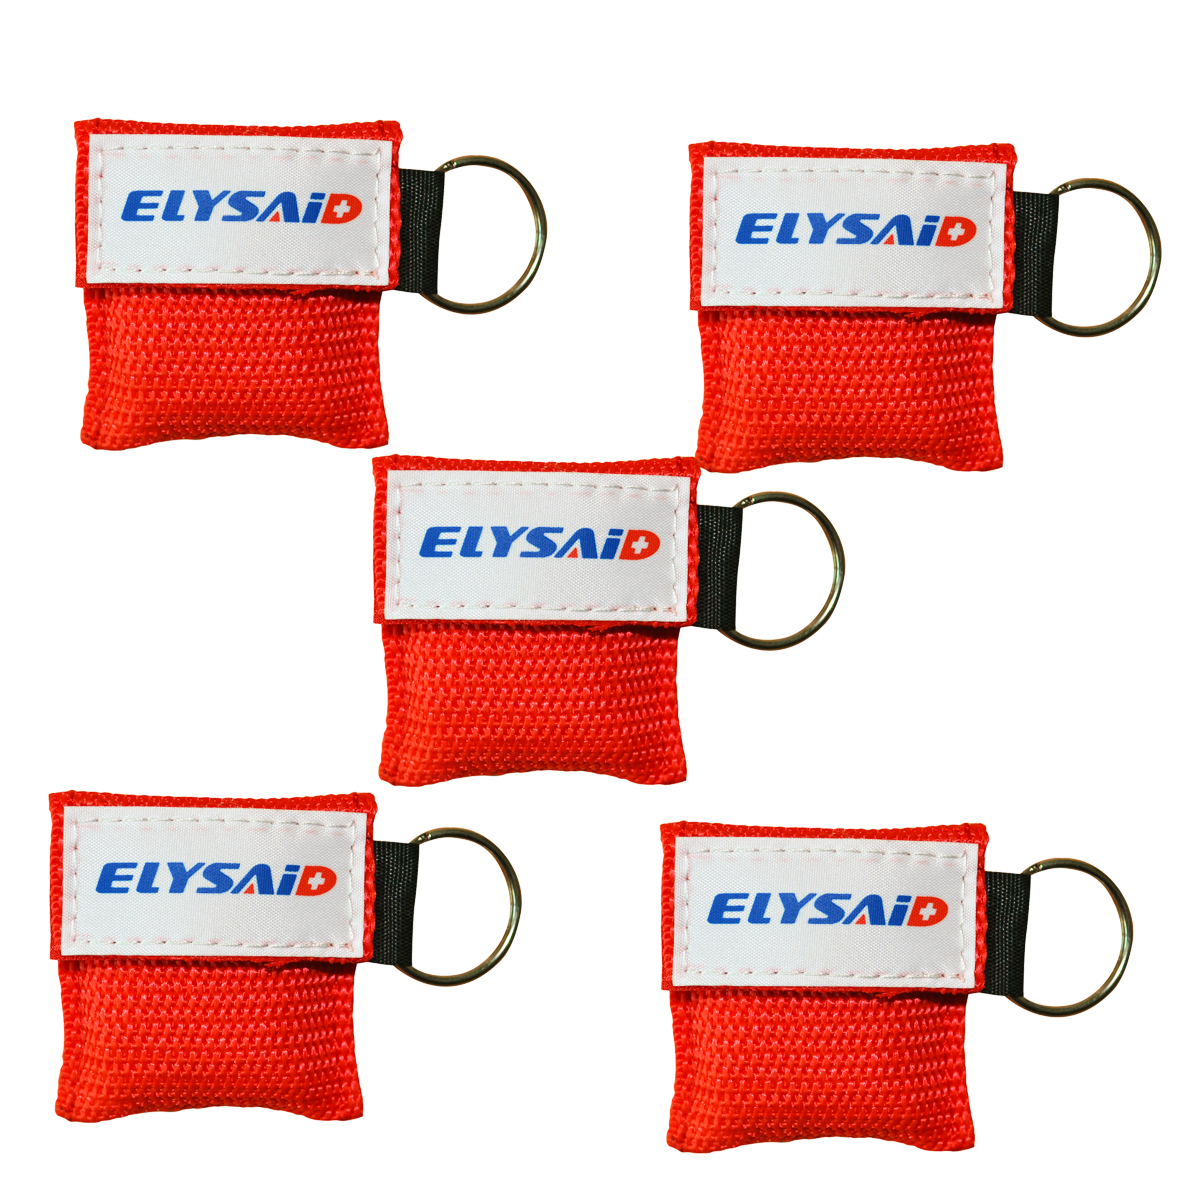 10Pcs CPR Resuscitator Mask CPR Face Shield Emergency Mask With Keychain Key Ring One-way Valve First Aid Rescue Kit Red Pouch